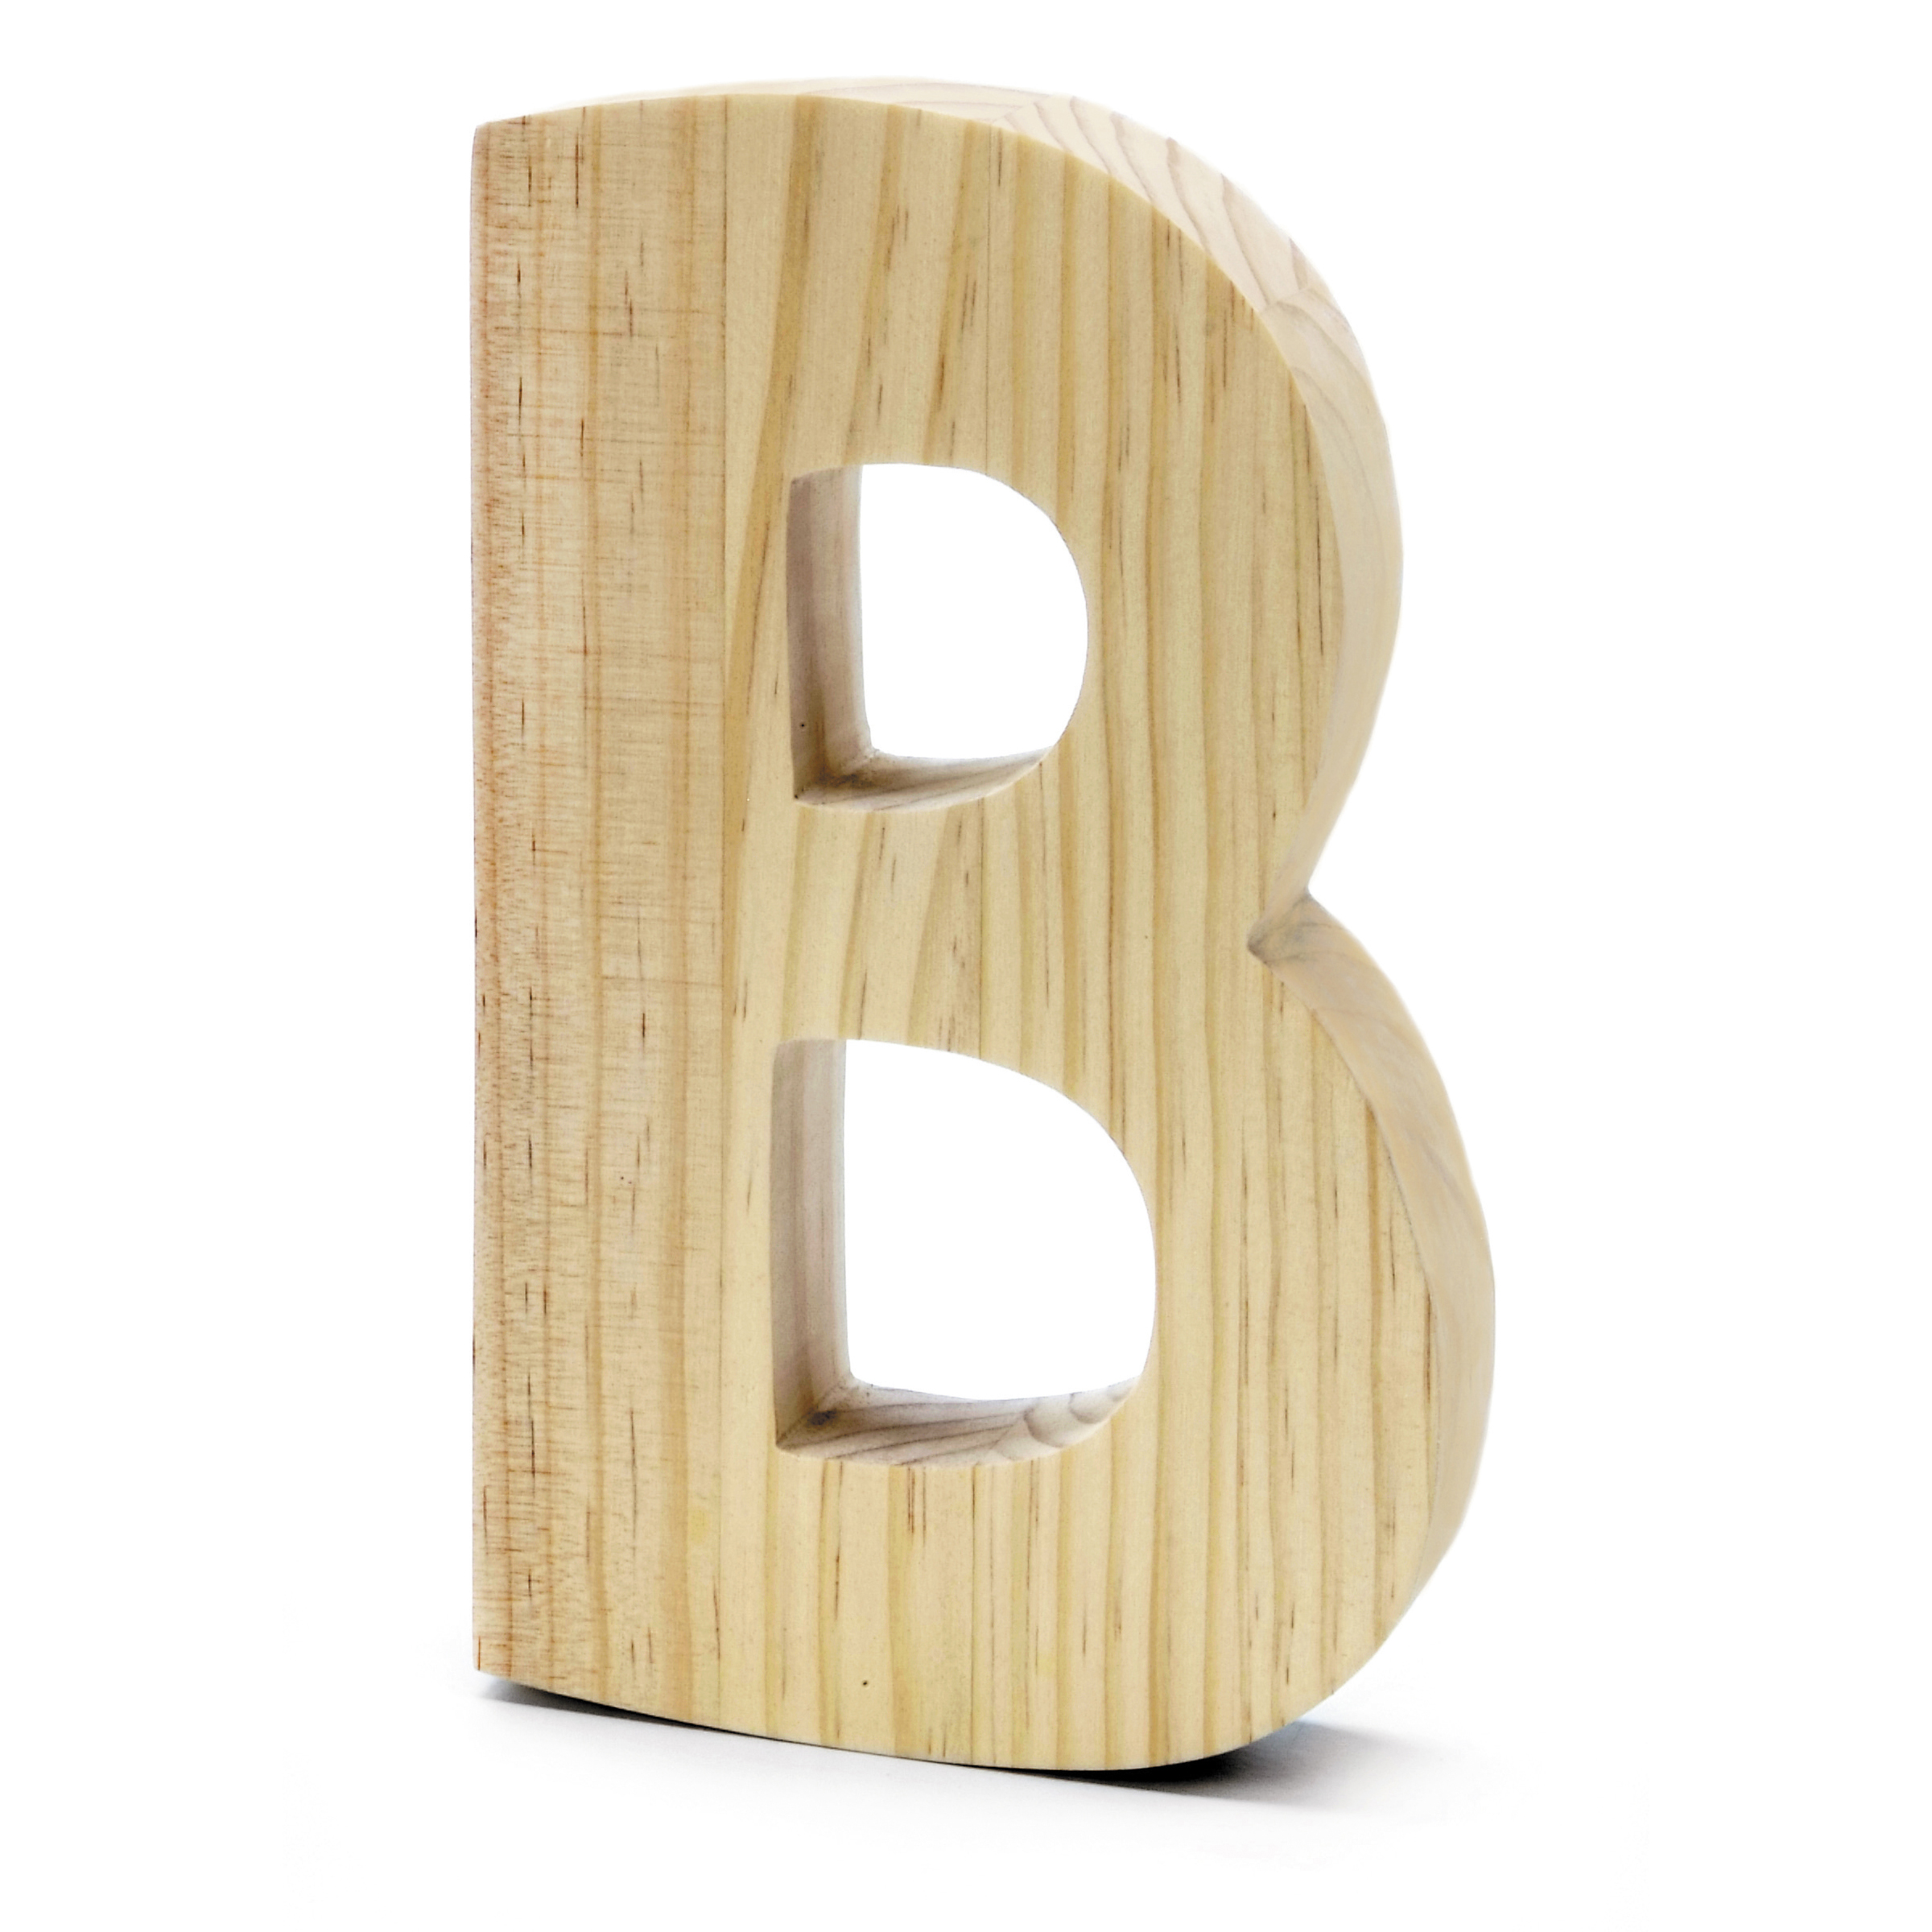 Chunky Wood Letter 8 X 5 In, B